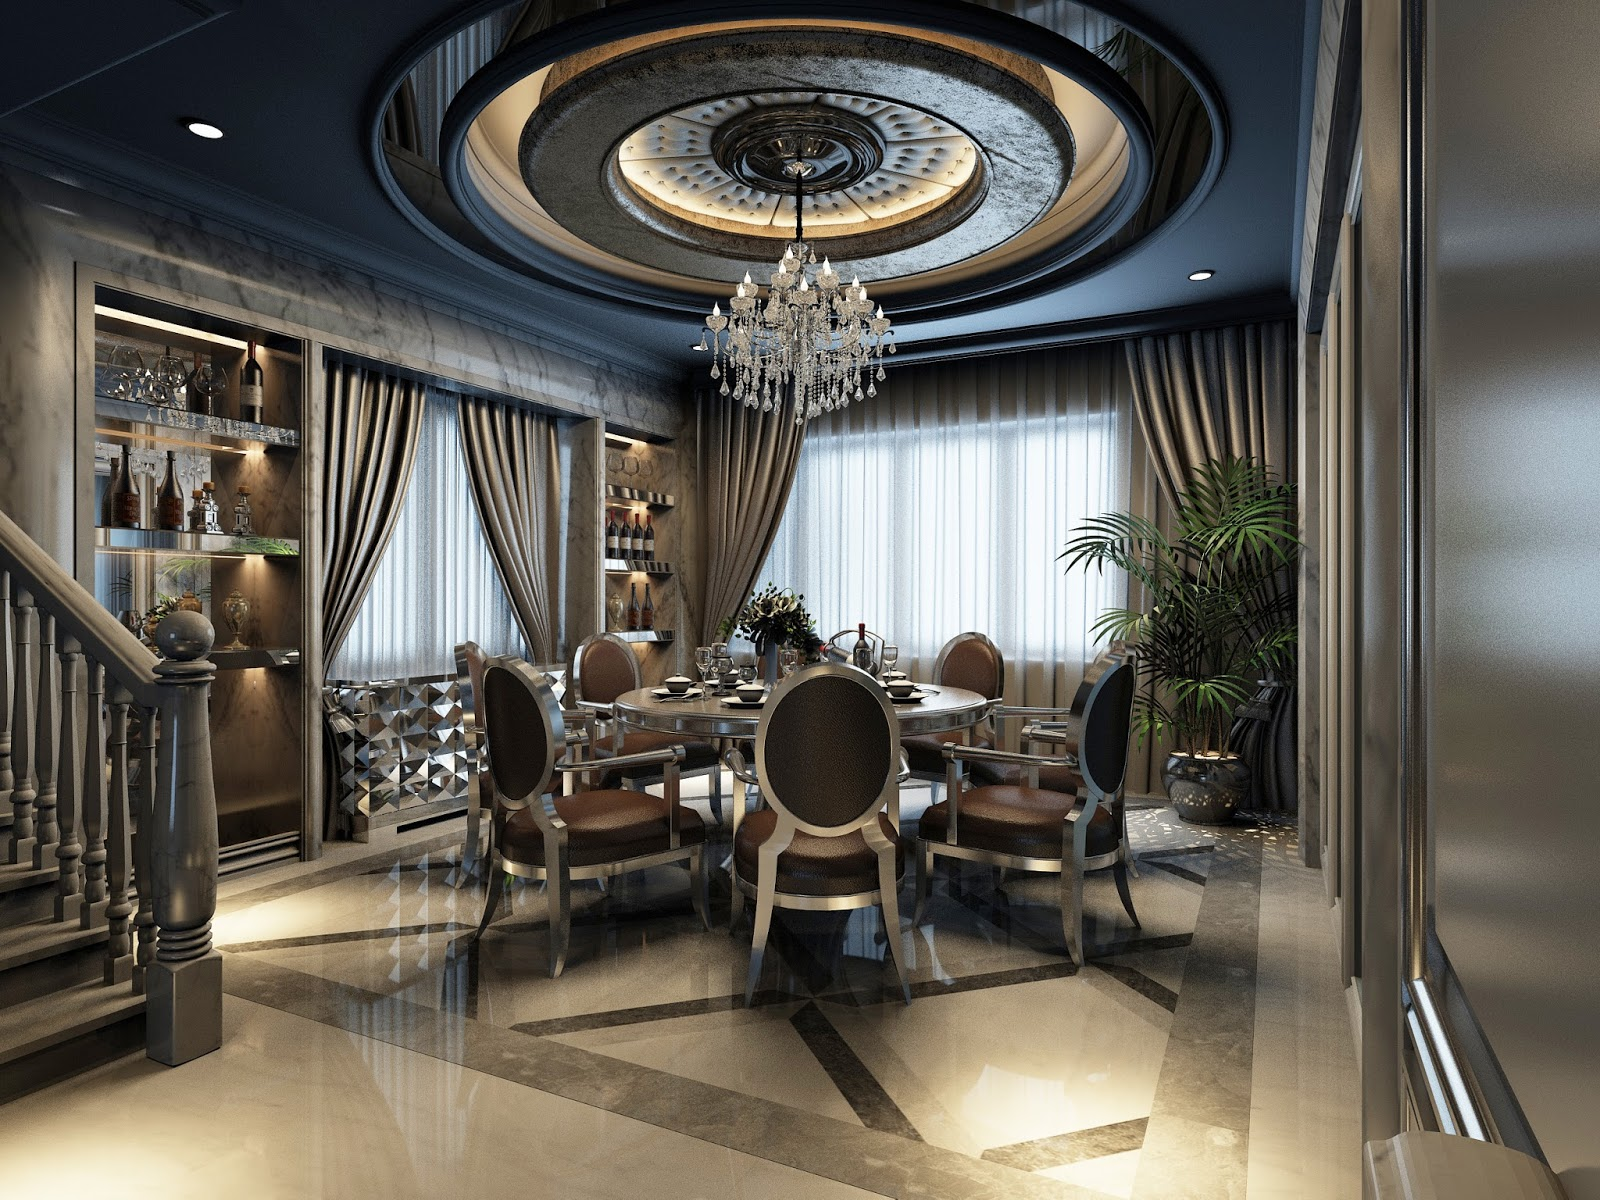 MODERN CLASSICAL DINNING ROOM INTERIOR DESIGN BY BATTE RONALD